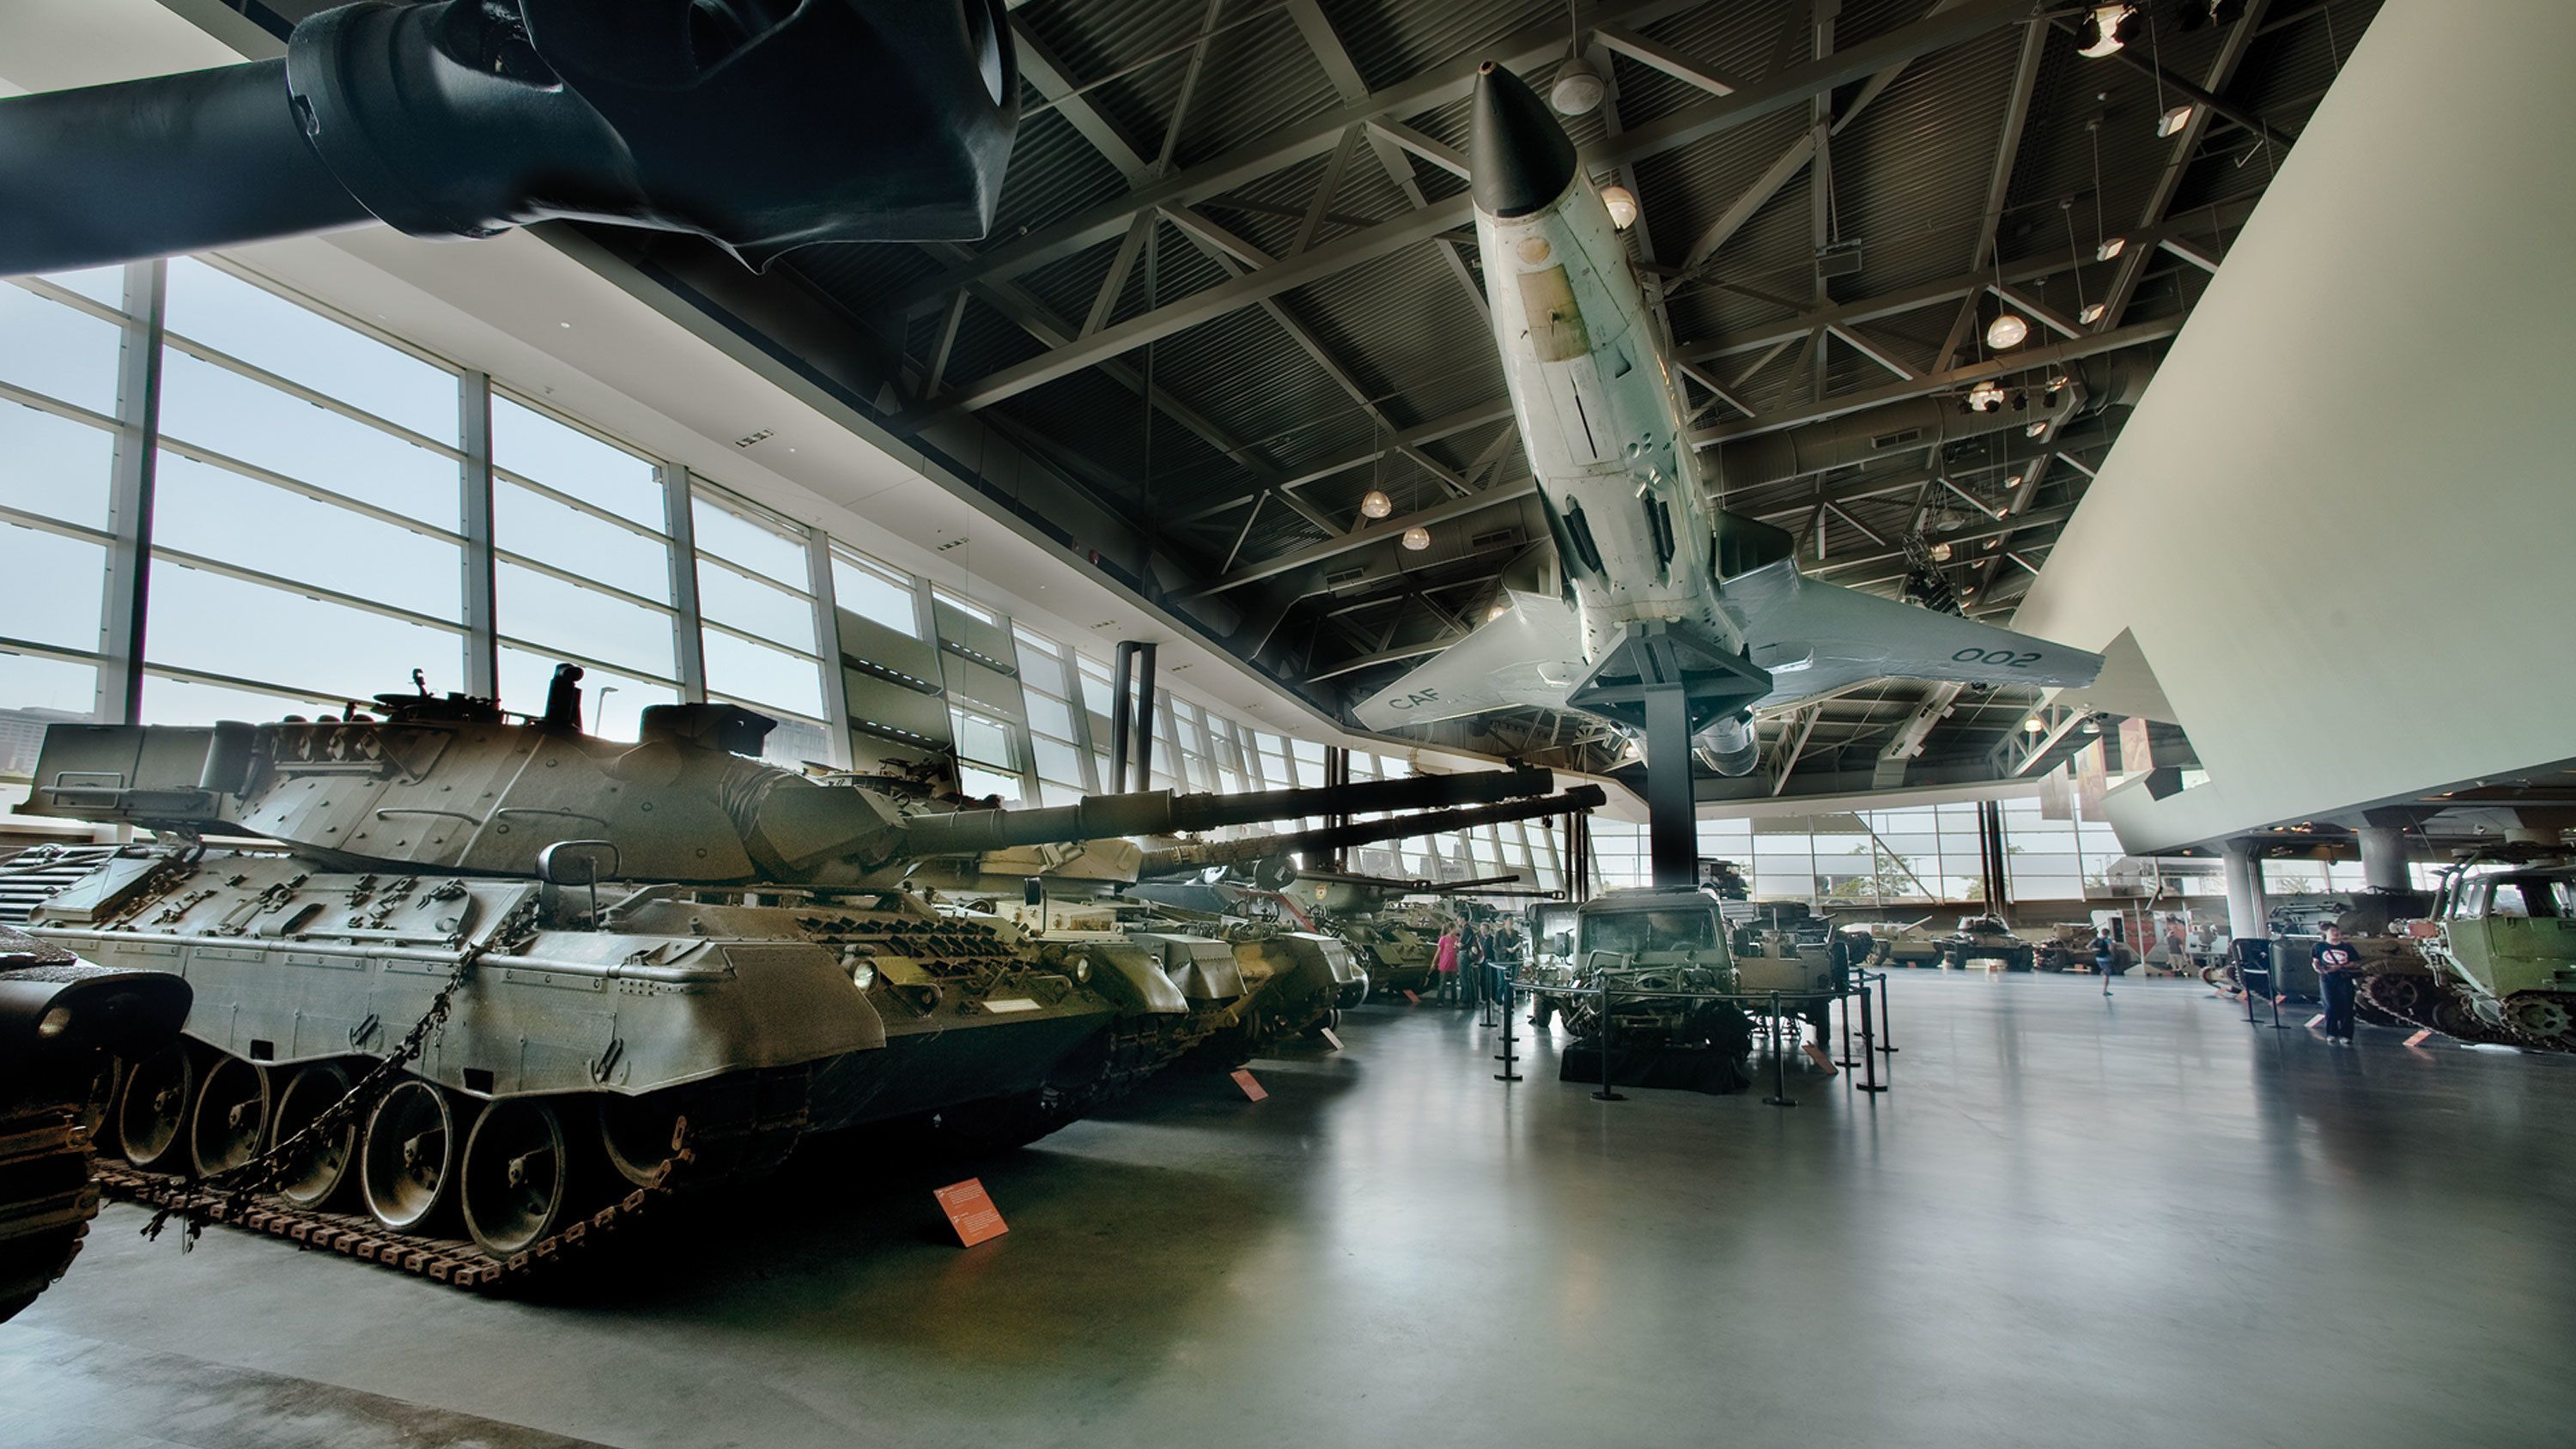 Plane suspended above military tanks and vehicles at the Canadian War Museum in Ottawa